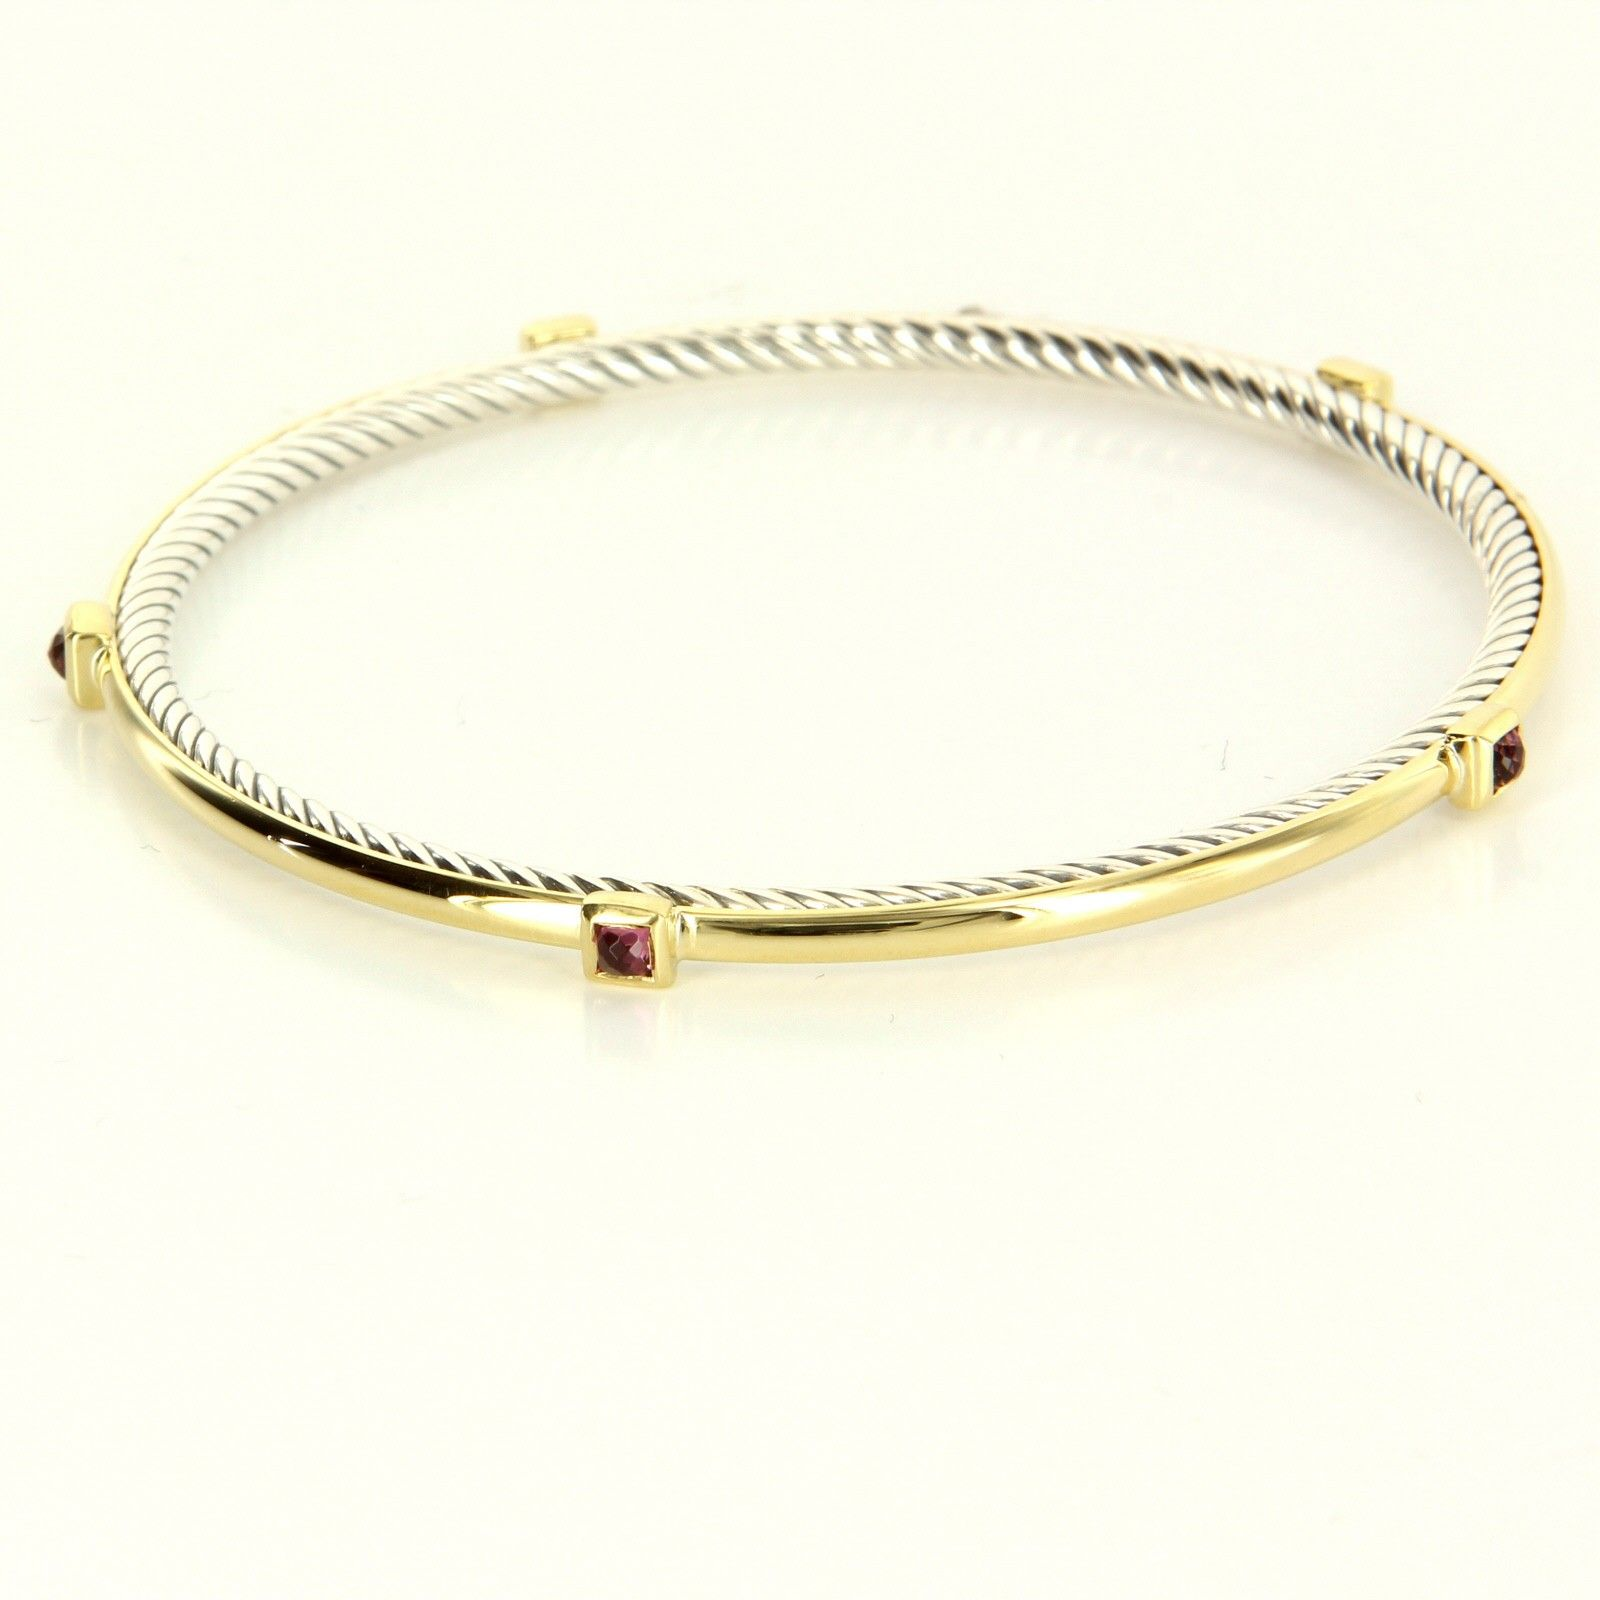 bracelet news bracelets the watches best bangle cuffs michael uk bangles brands kors jewellery cartier of love fashion